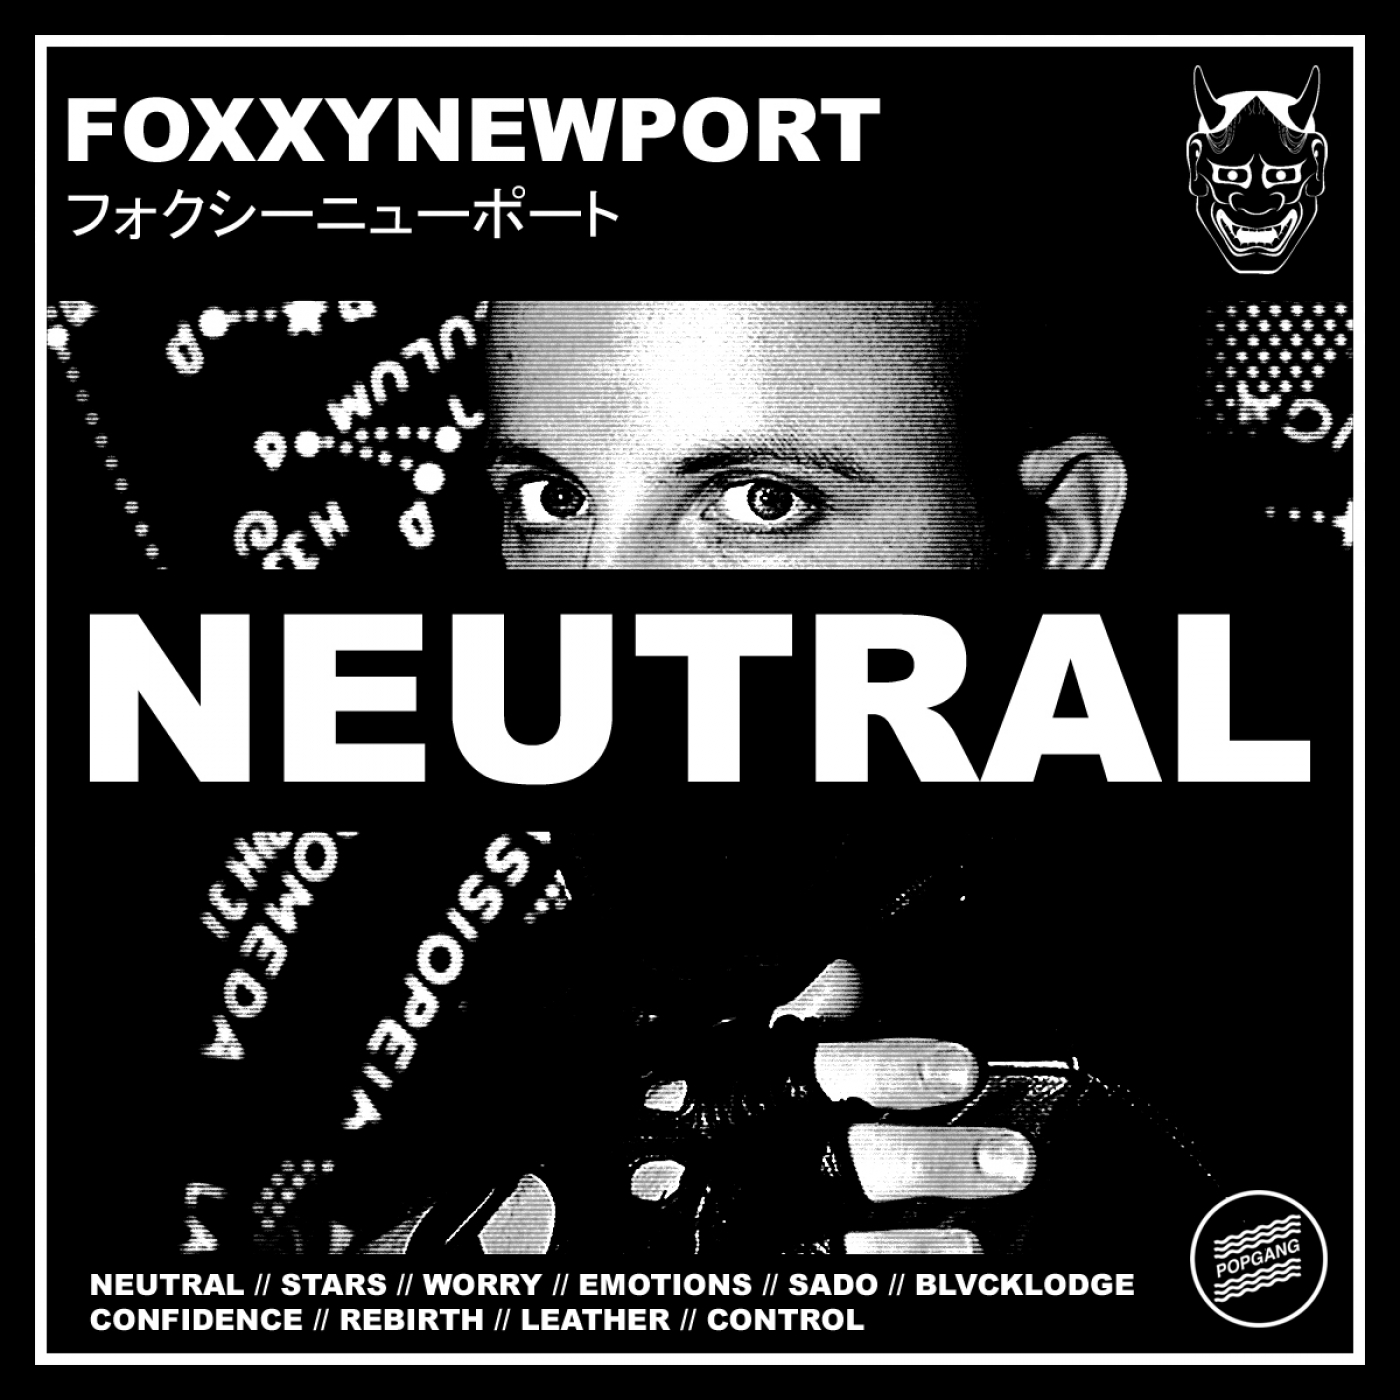 Foxxy Newport - Neutral